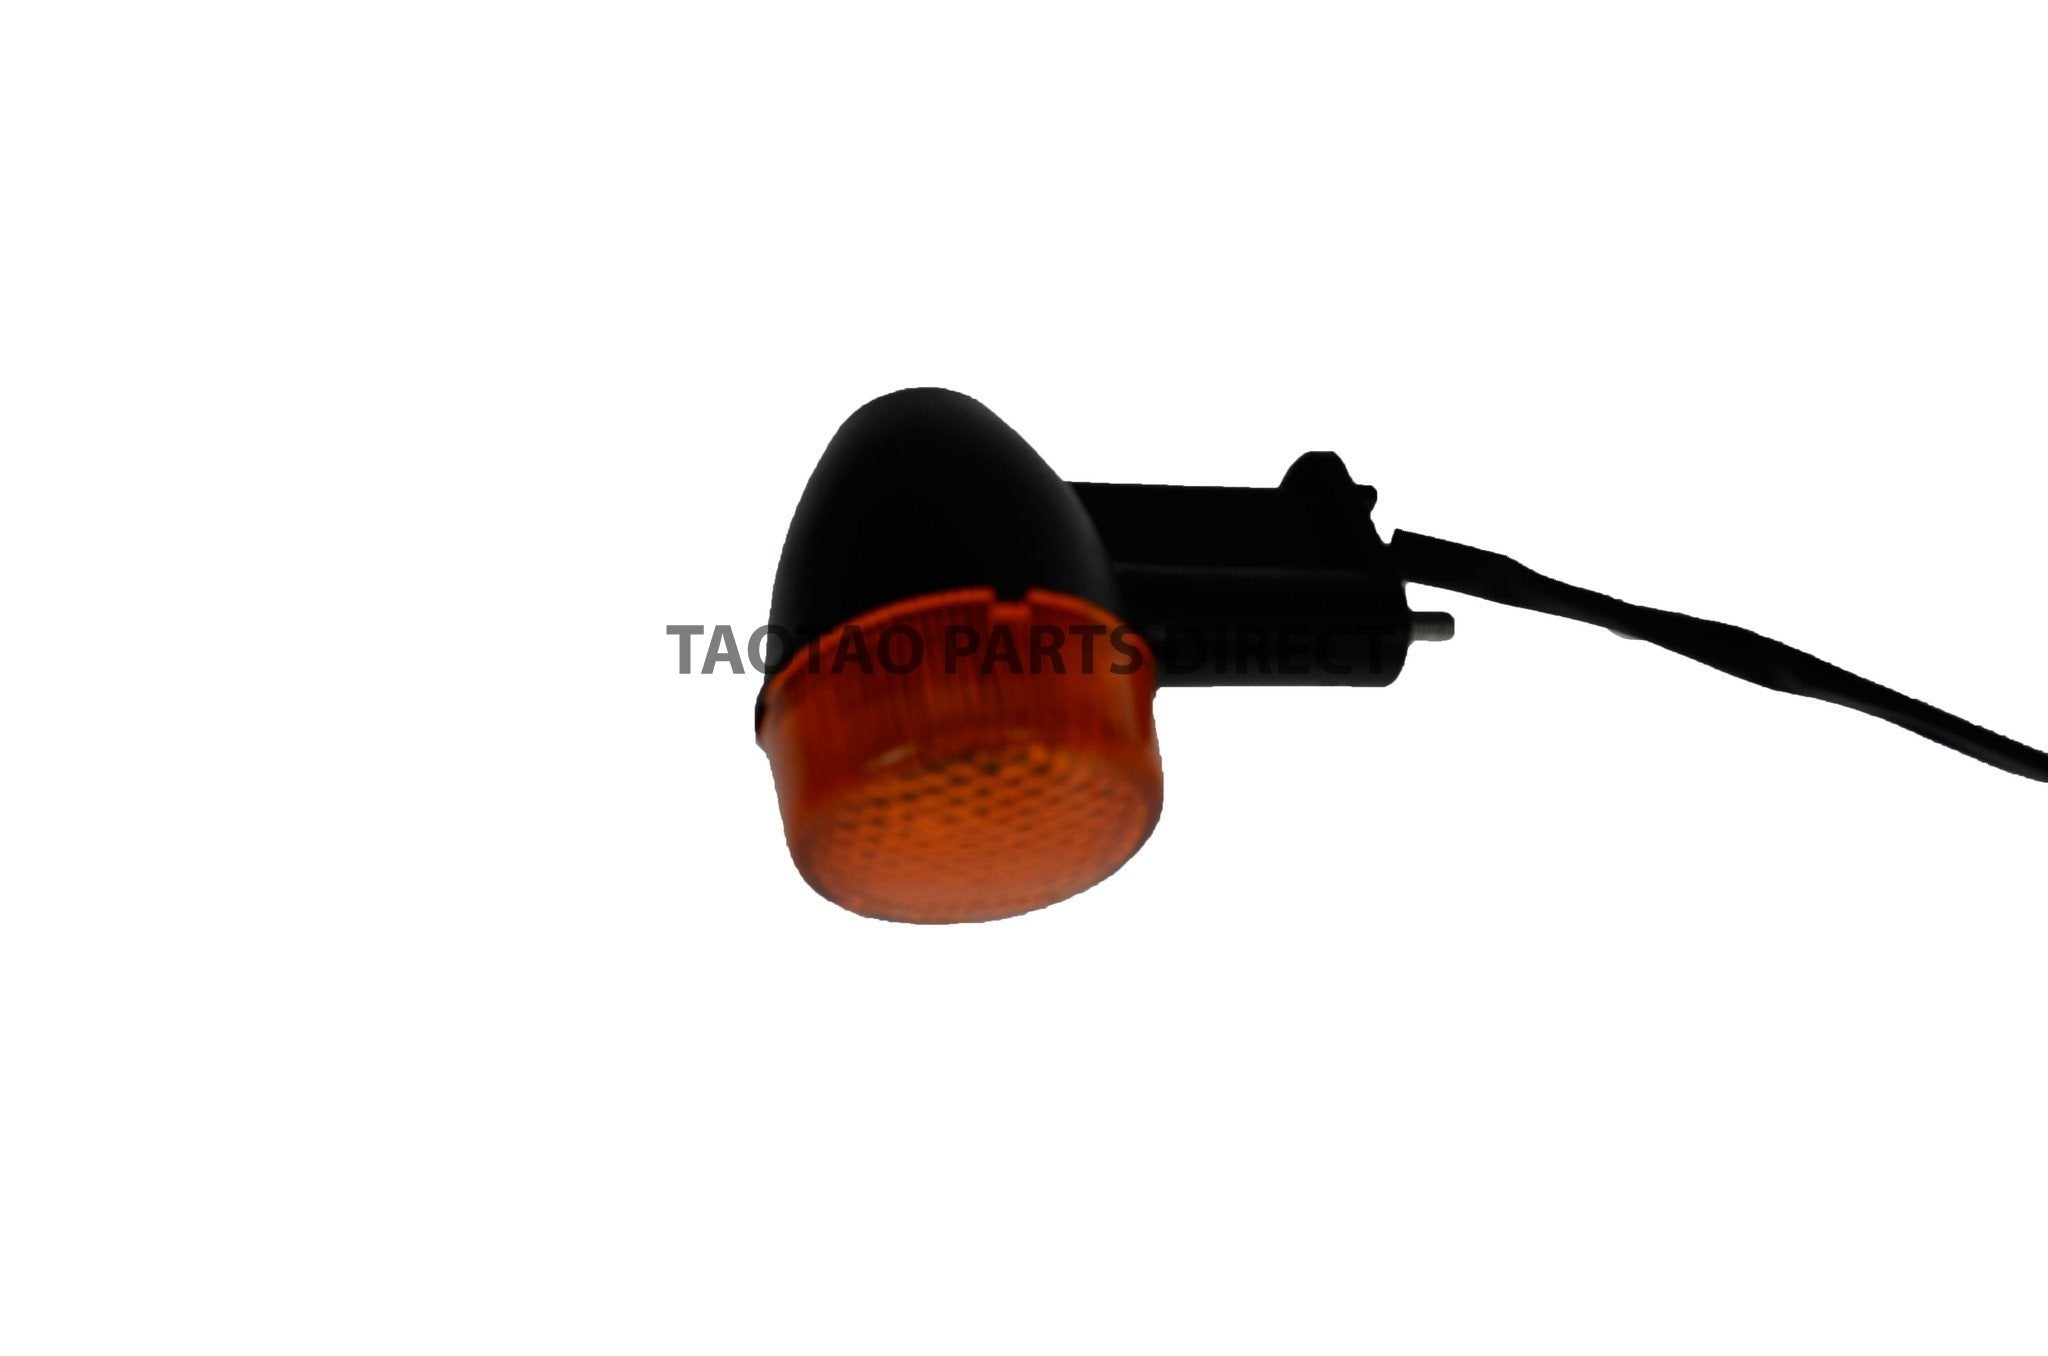 Scooter Parts - CY150B Rear Turn Signal